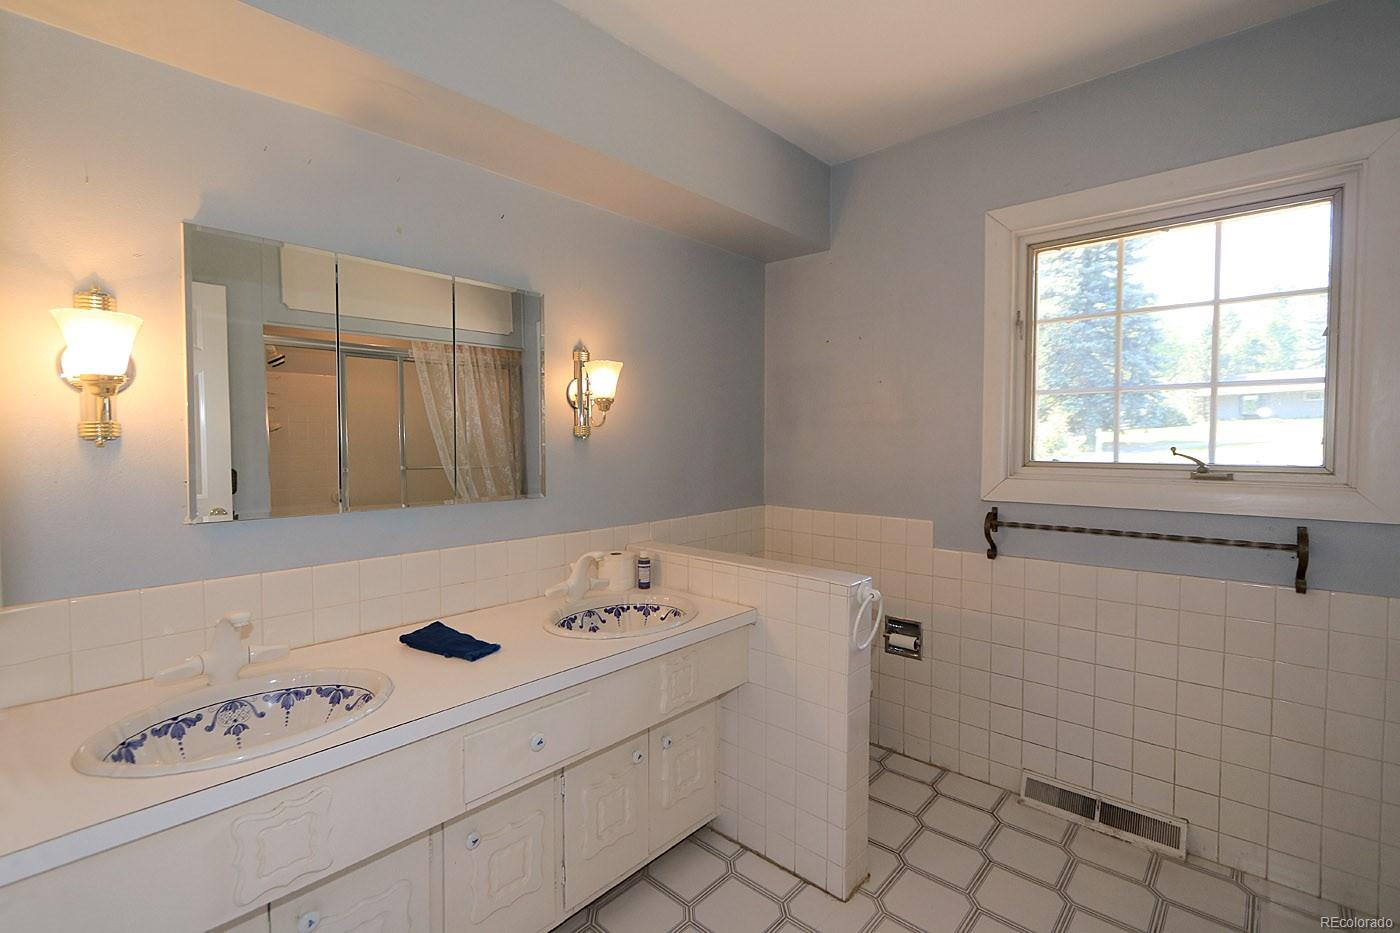 Guest Bath features large vanity area with 2 sinks